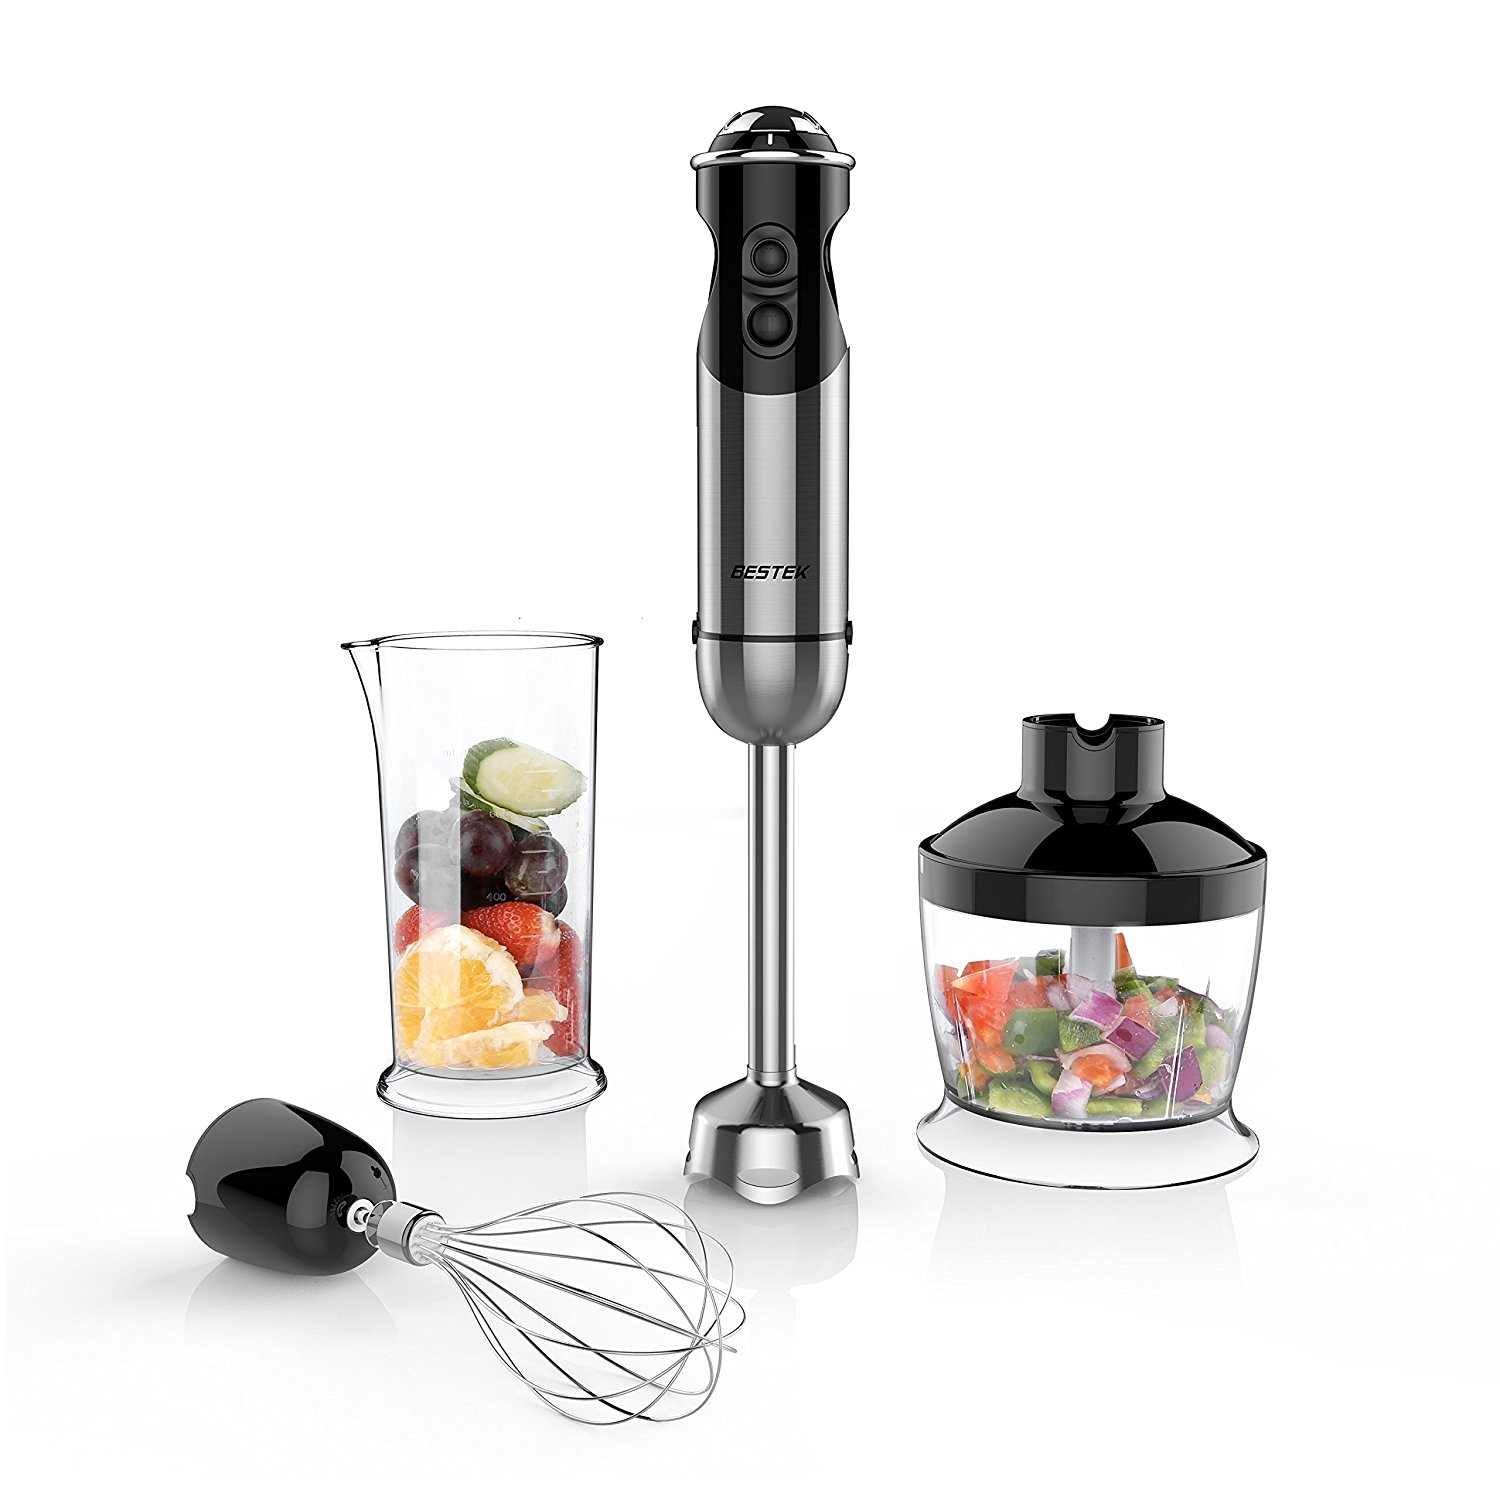 BESTEK 350W 4-in-1 Immersion Hand Blender Set for Smoothies Baby Food Yogurt Sauces Soups